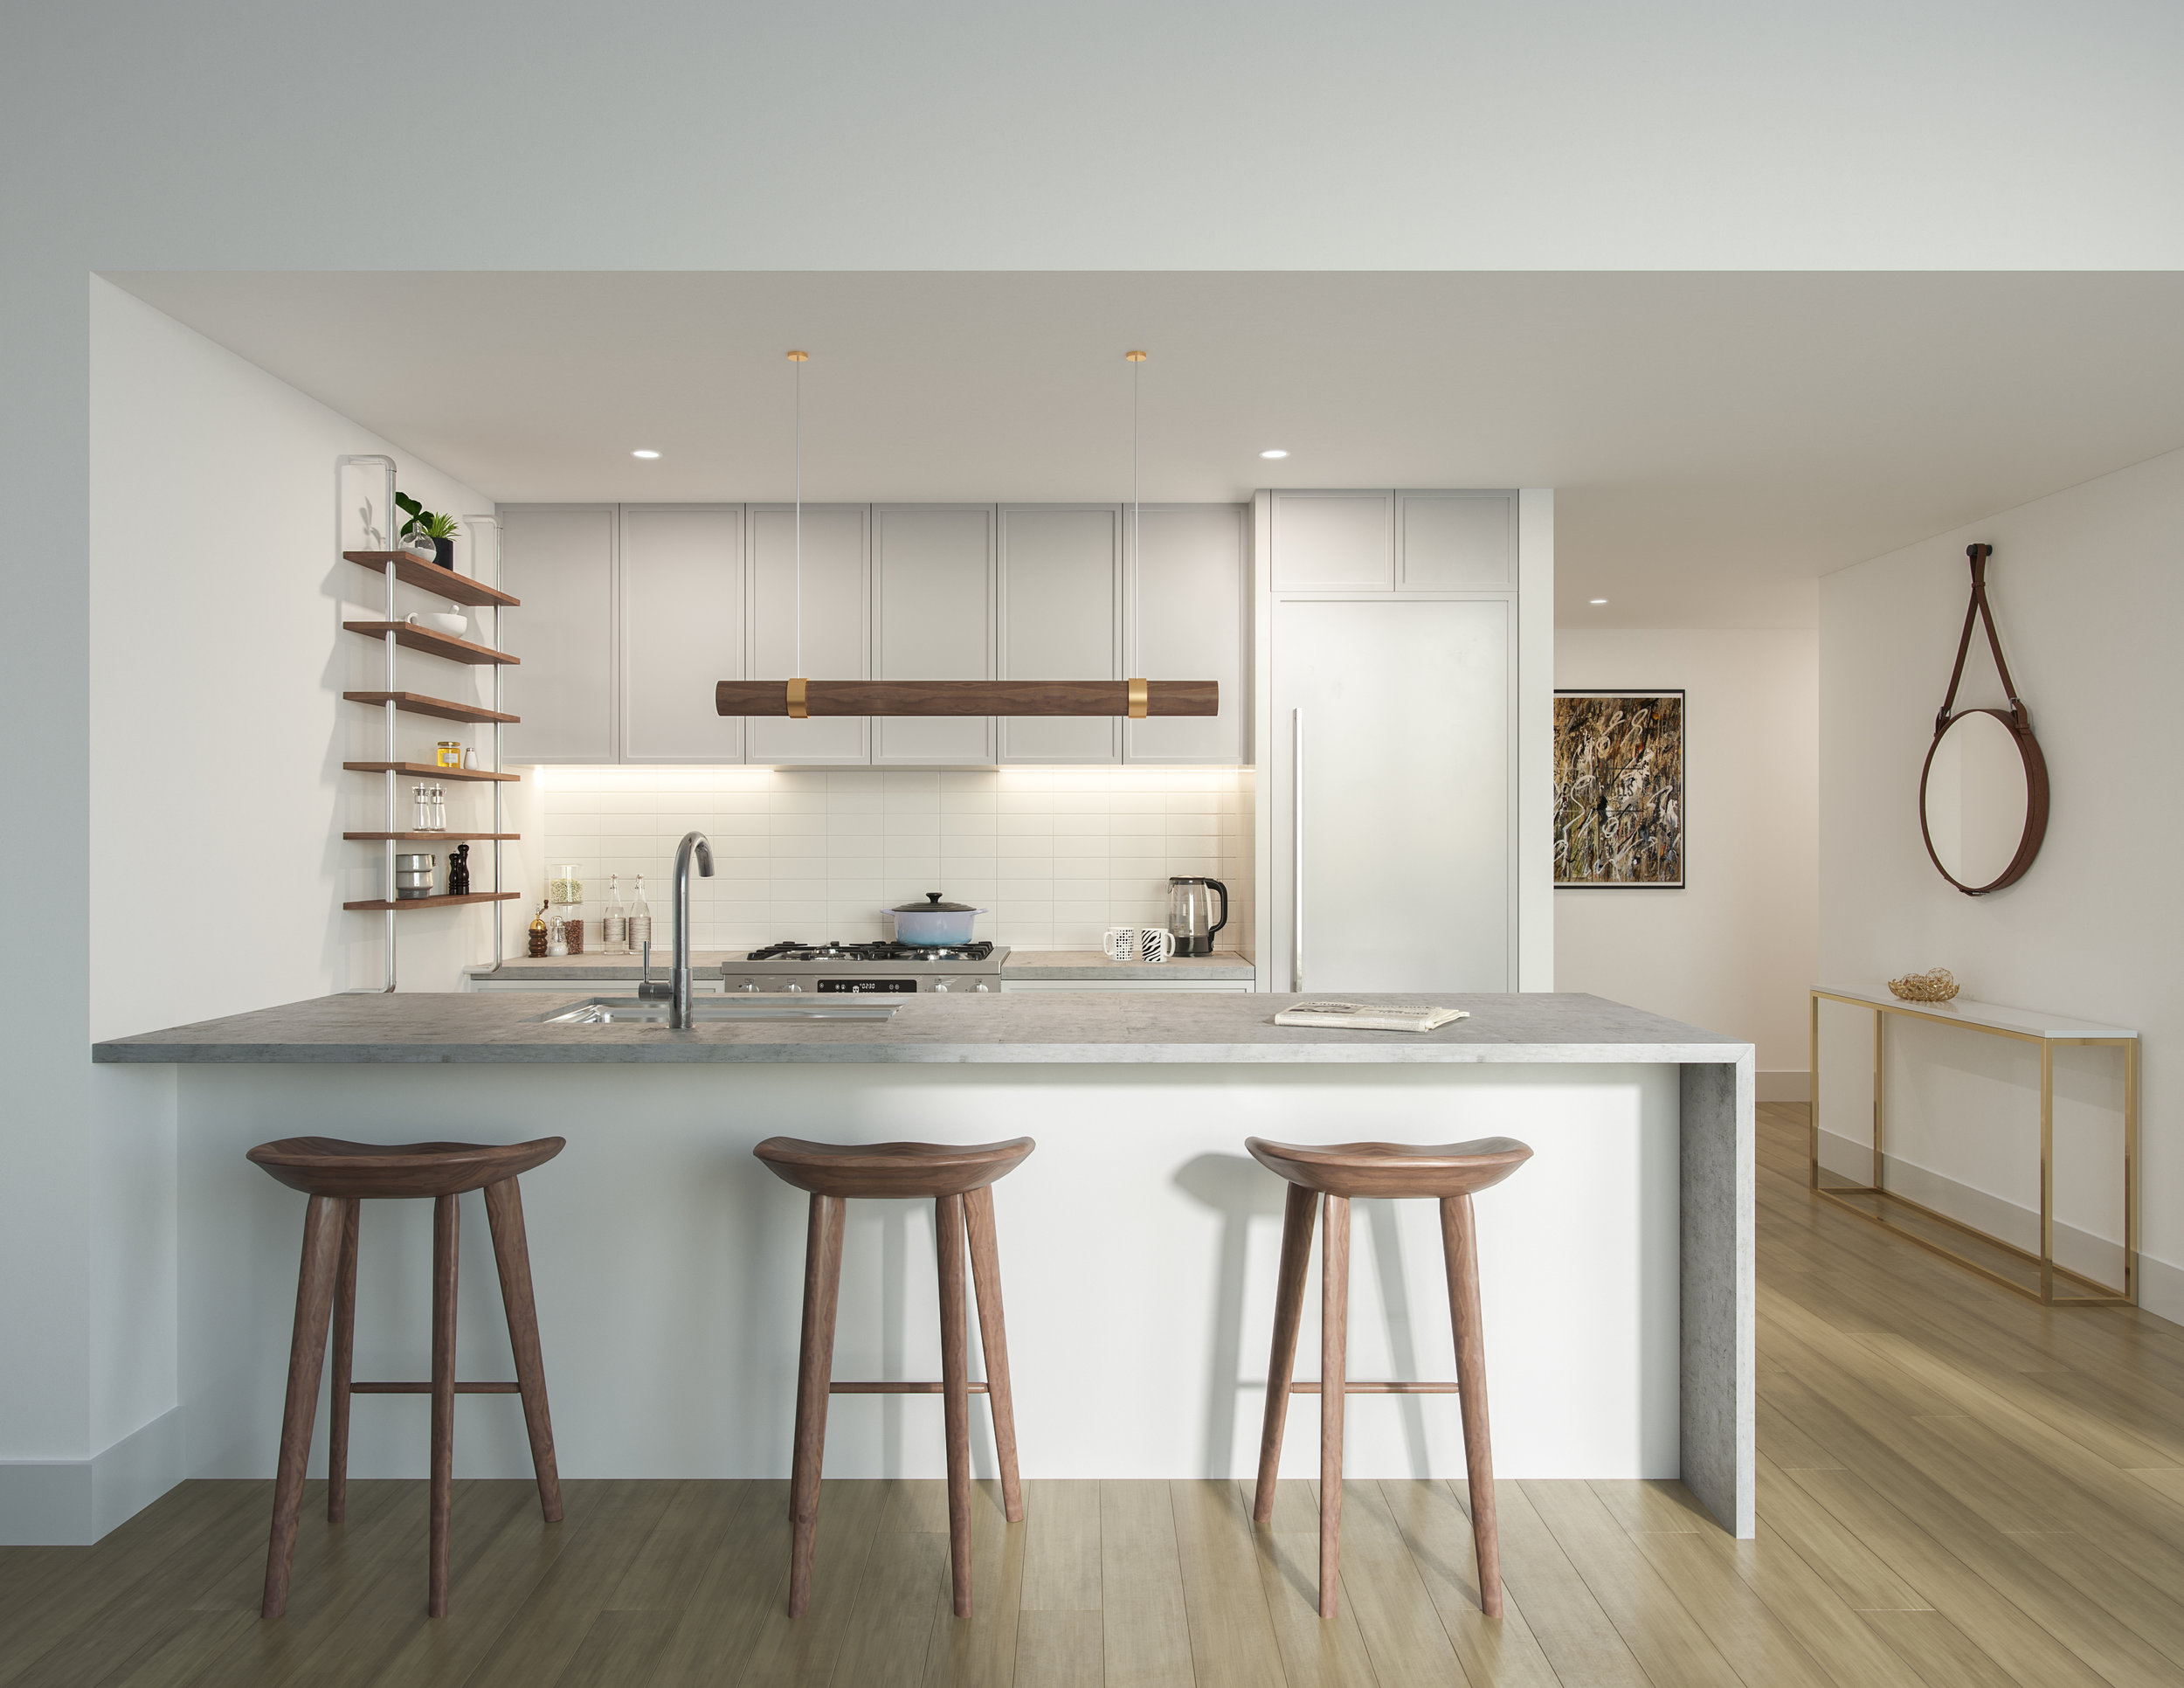 Get A Sneak Preview Of 111 Montgomery, The First Ground-Up Luxury Condo In Crown Heights